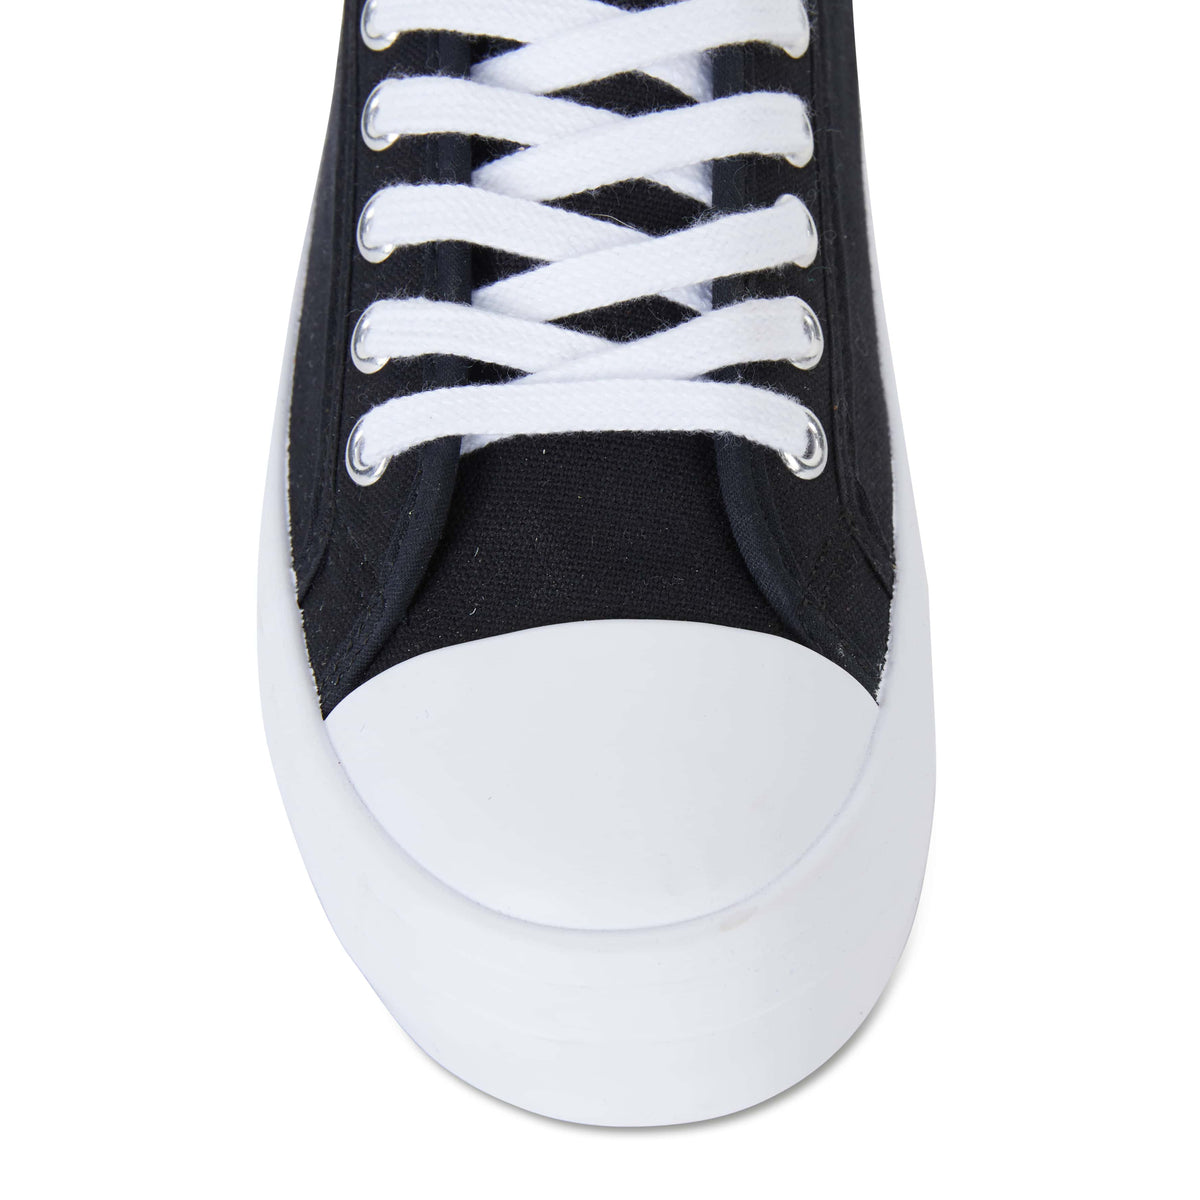 Stacey Sneaker in Black Canvas